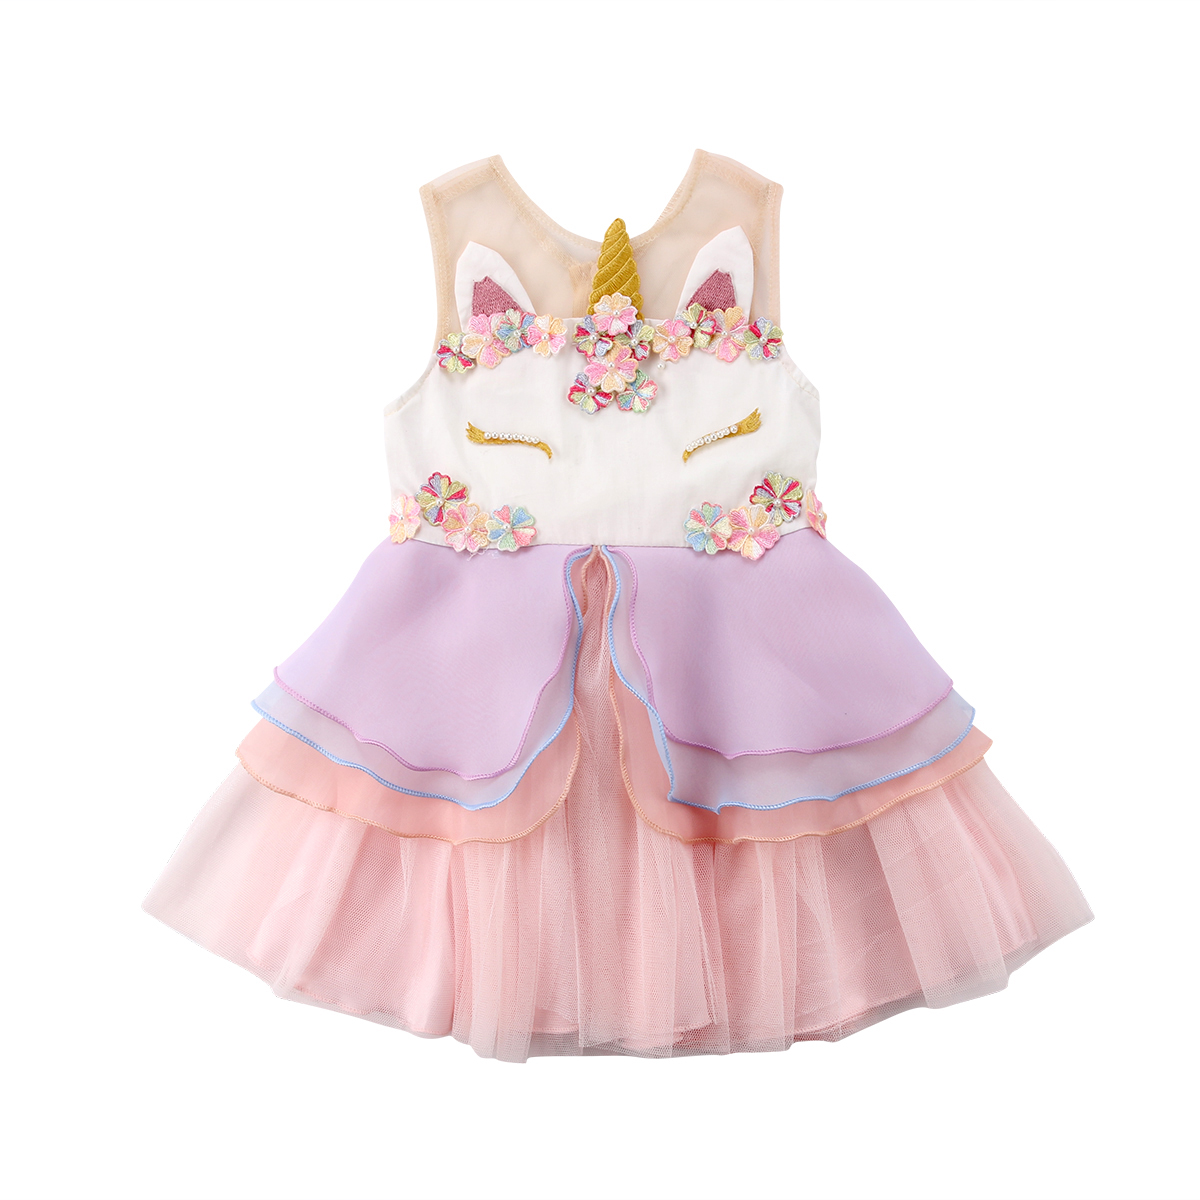 Fancy Chiffon Kids Girls Clothing Dresses Gown Tutu Ruffles Tiered Party Formal Tulle Flower Dress Girl 0-6T toddler autumn dress kids girls clothing dress jeans denim short sleeve ruffles tiered patchwork tutu mini dresses girl 2 7t